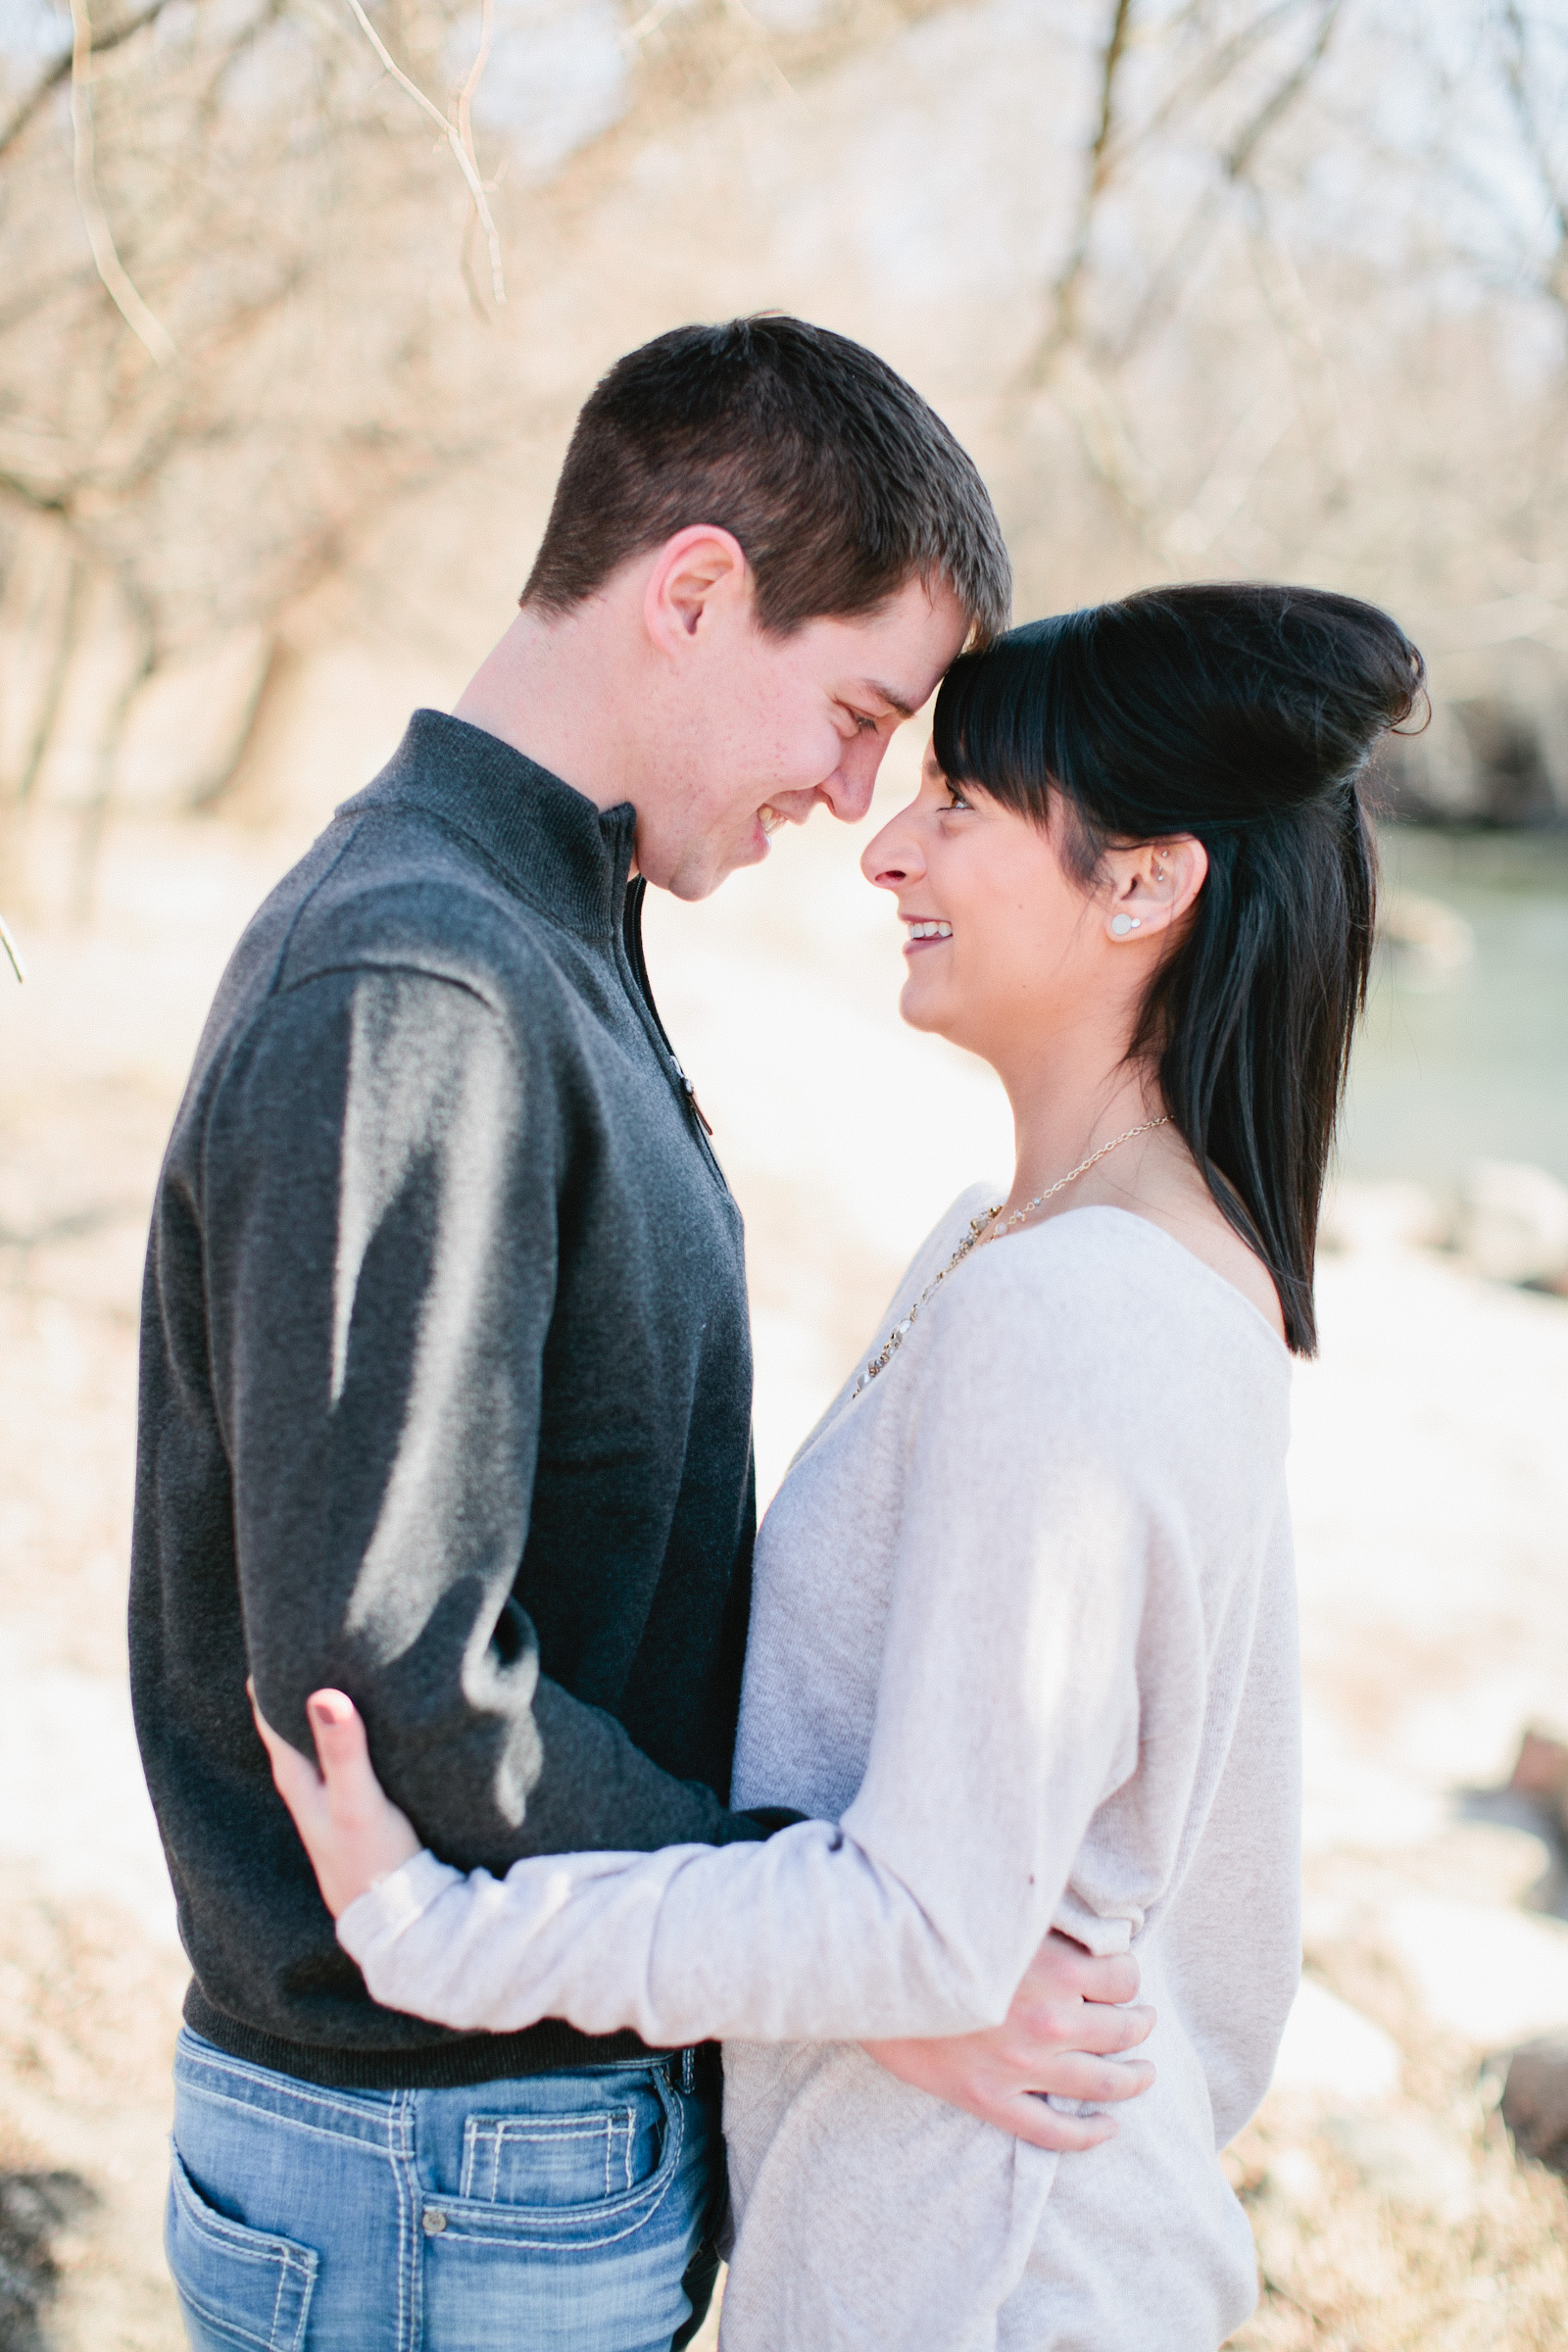 engagement photos in winter by a river in Iowa